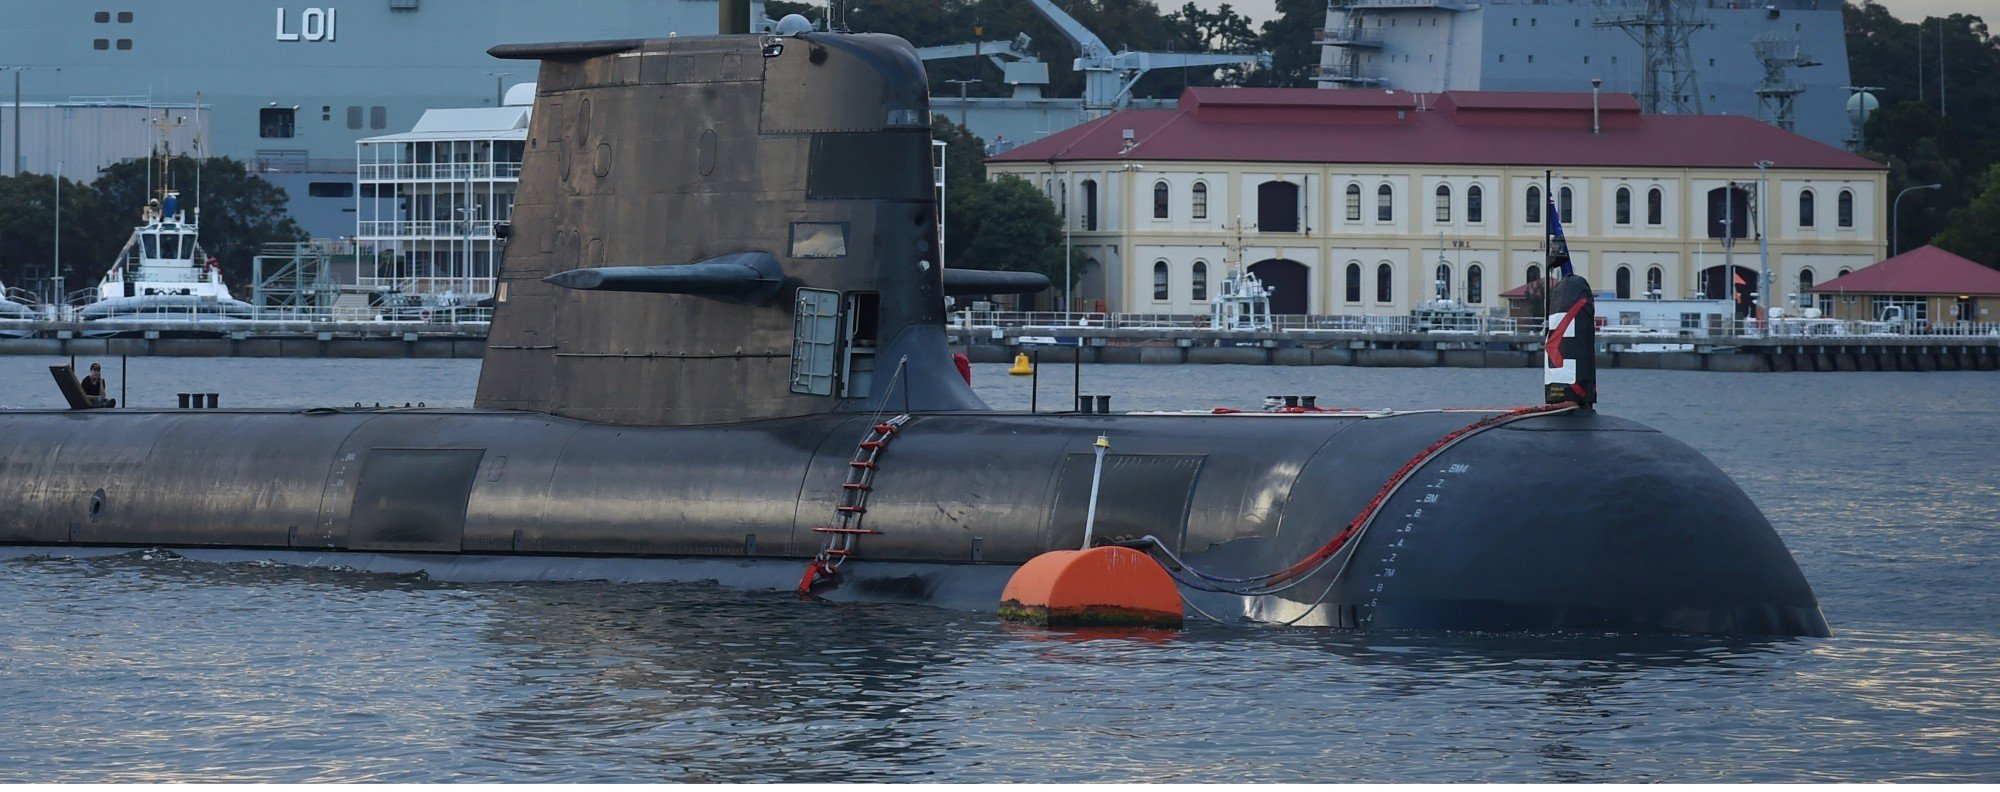 A Royal Australian Navy sub in Sydney Harbour. Photo: AFP